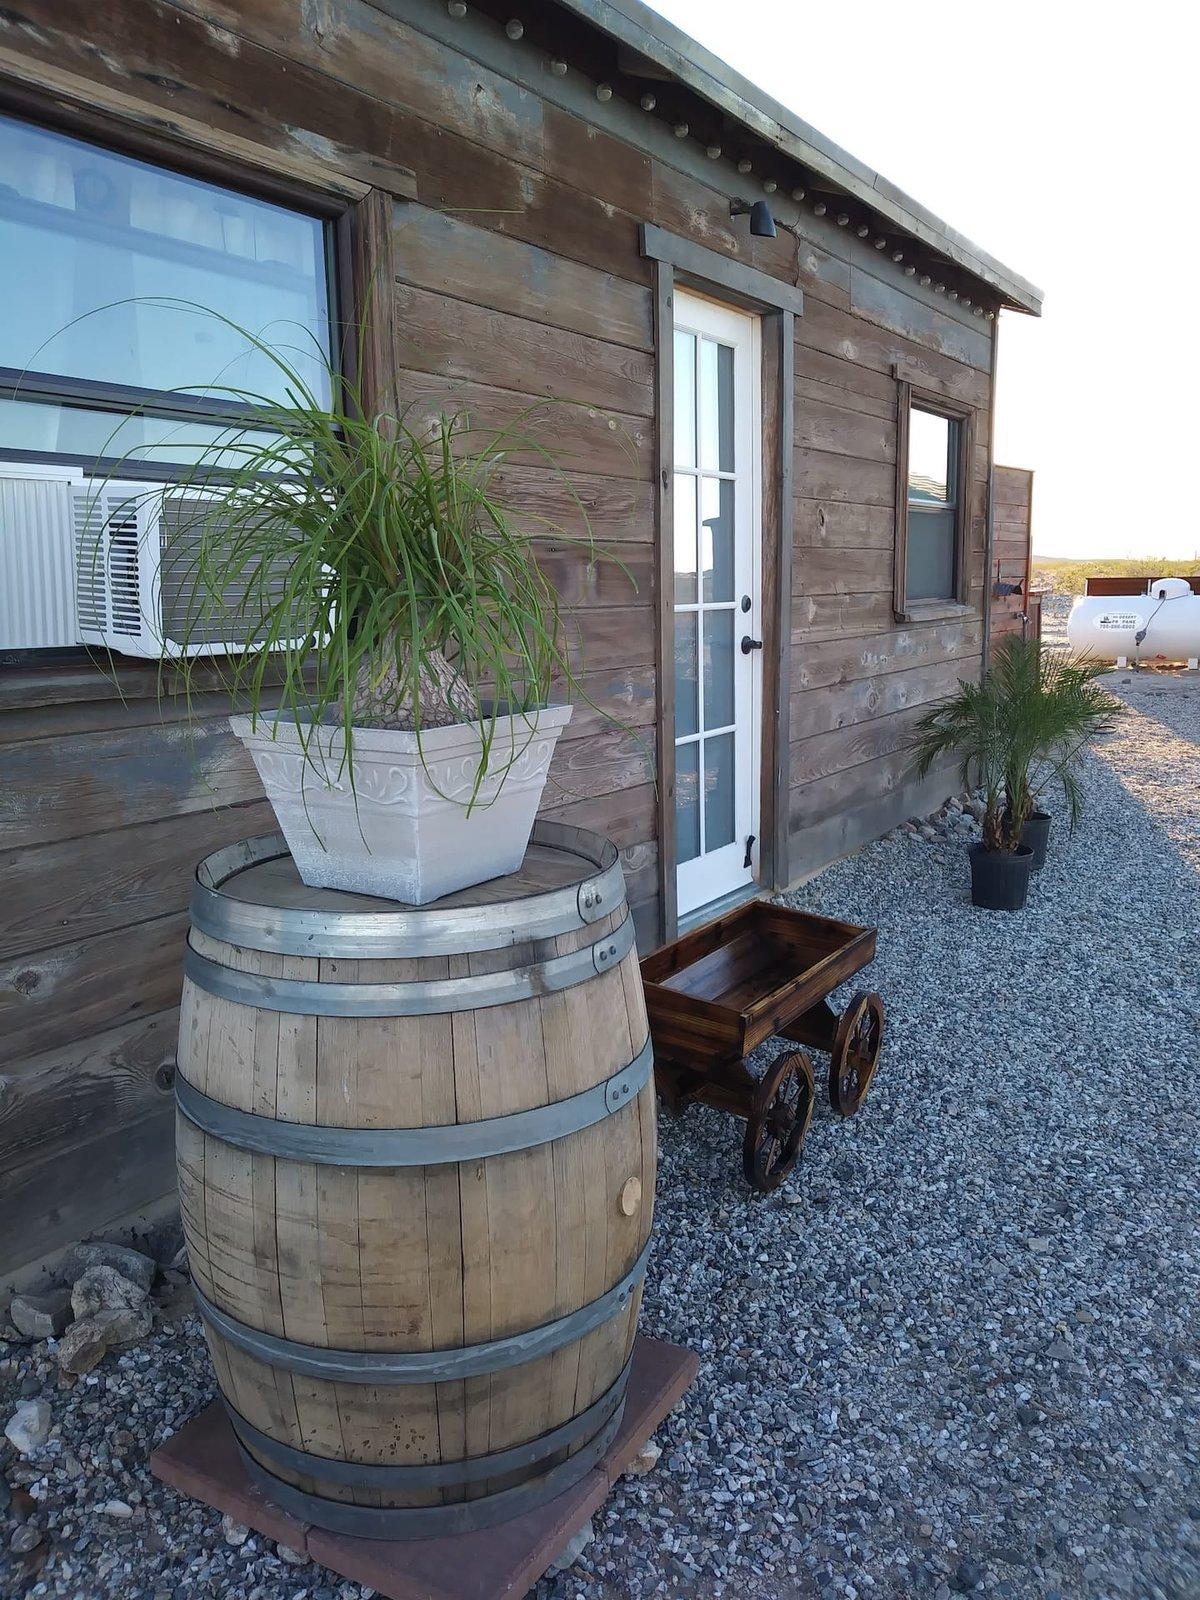 Located near Joshua Tree National Park, Cactus Jack has a homestead like quality and uses solar power and a generator.  Photo 19 of 24 in Check Out These 23 Tiny Houses Perfect for an Autumn Getaway